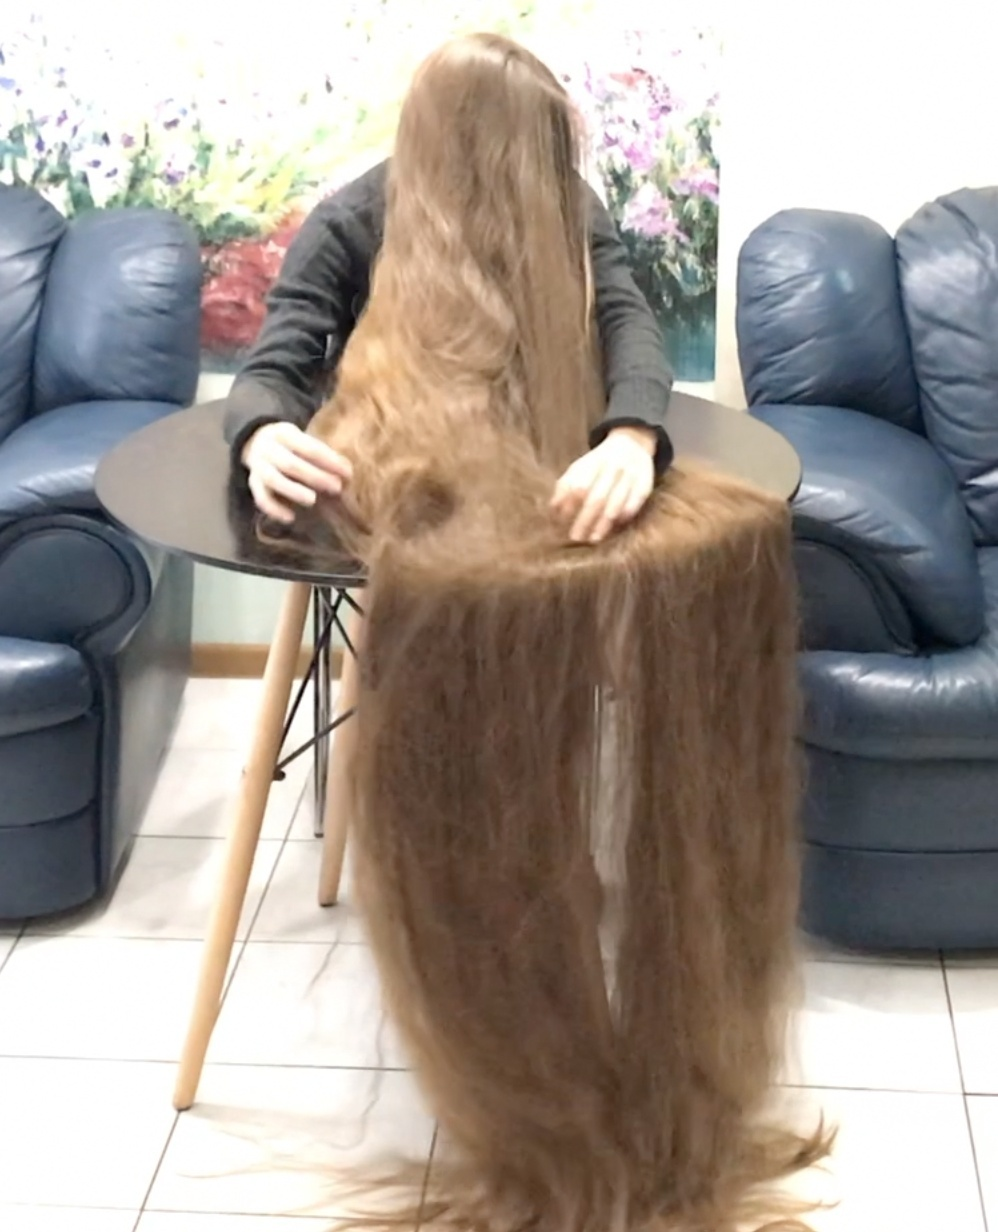 VIDEO - Super hair play on table